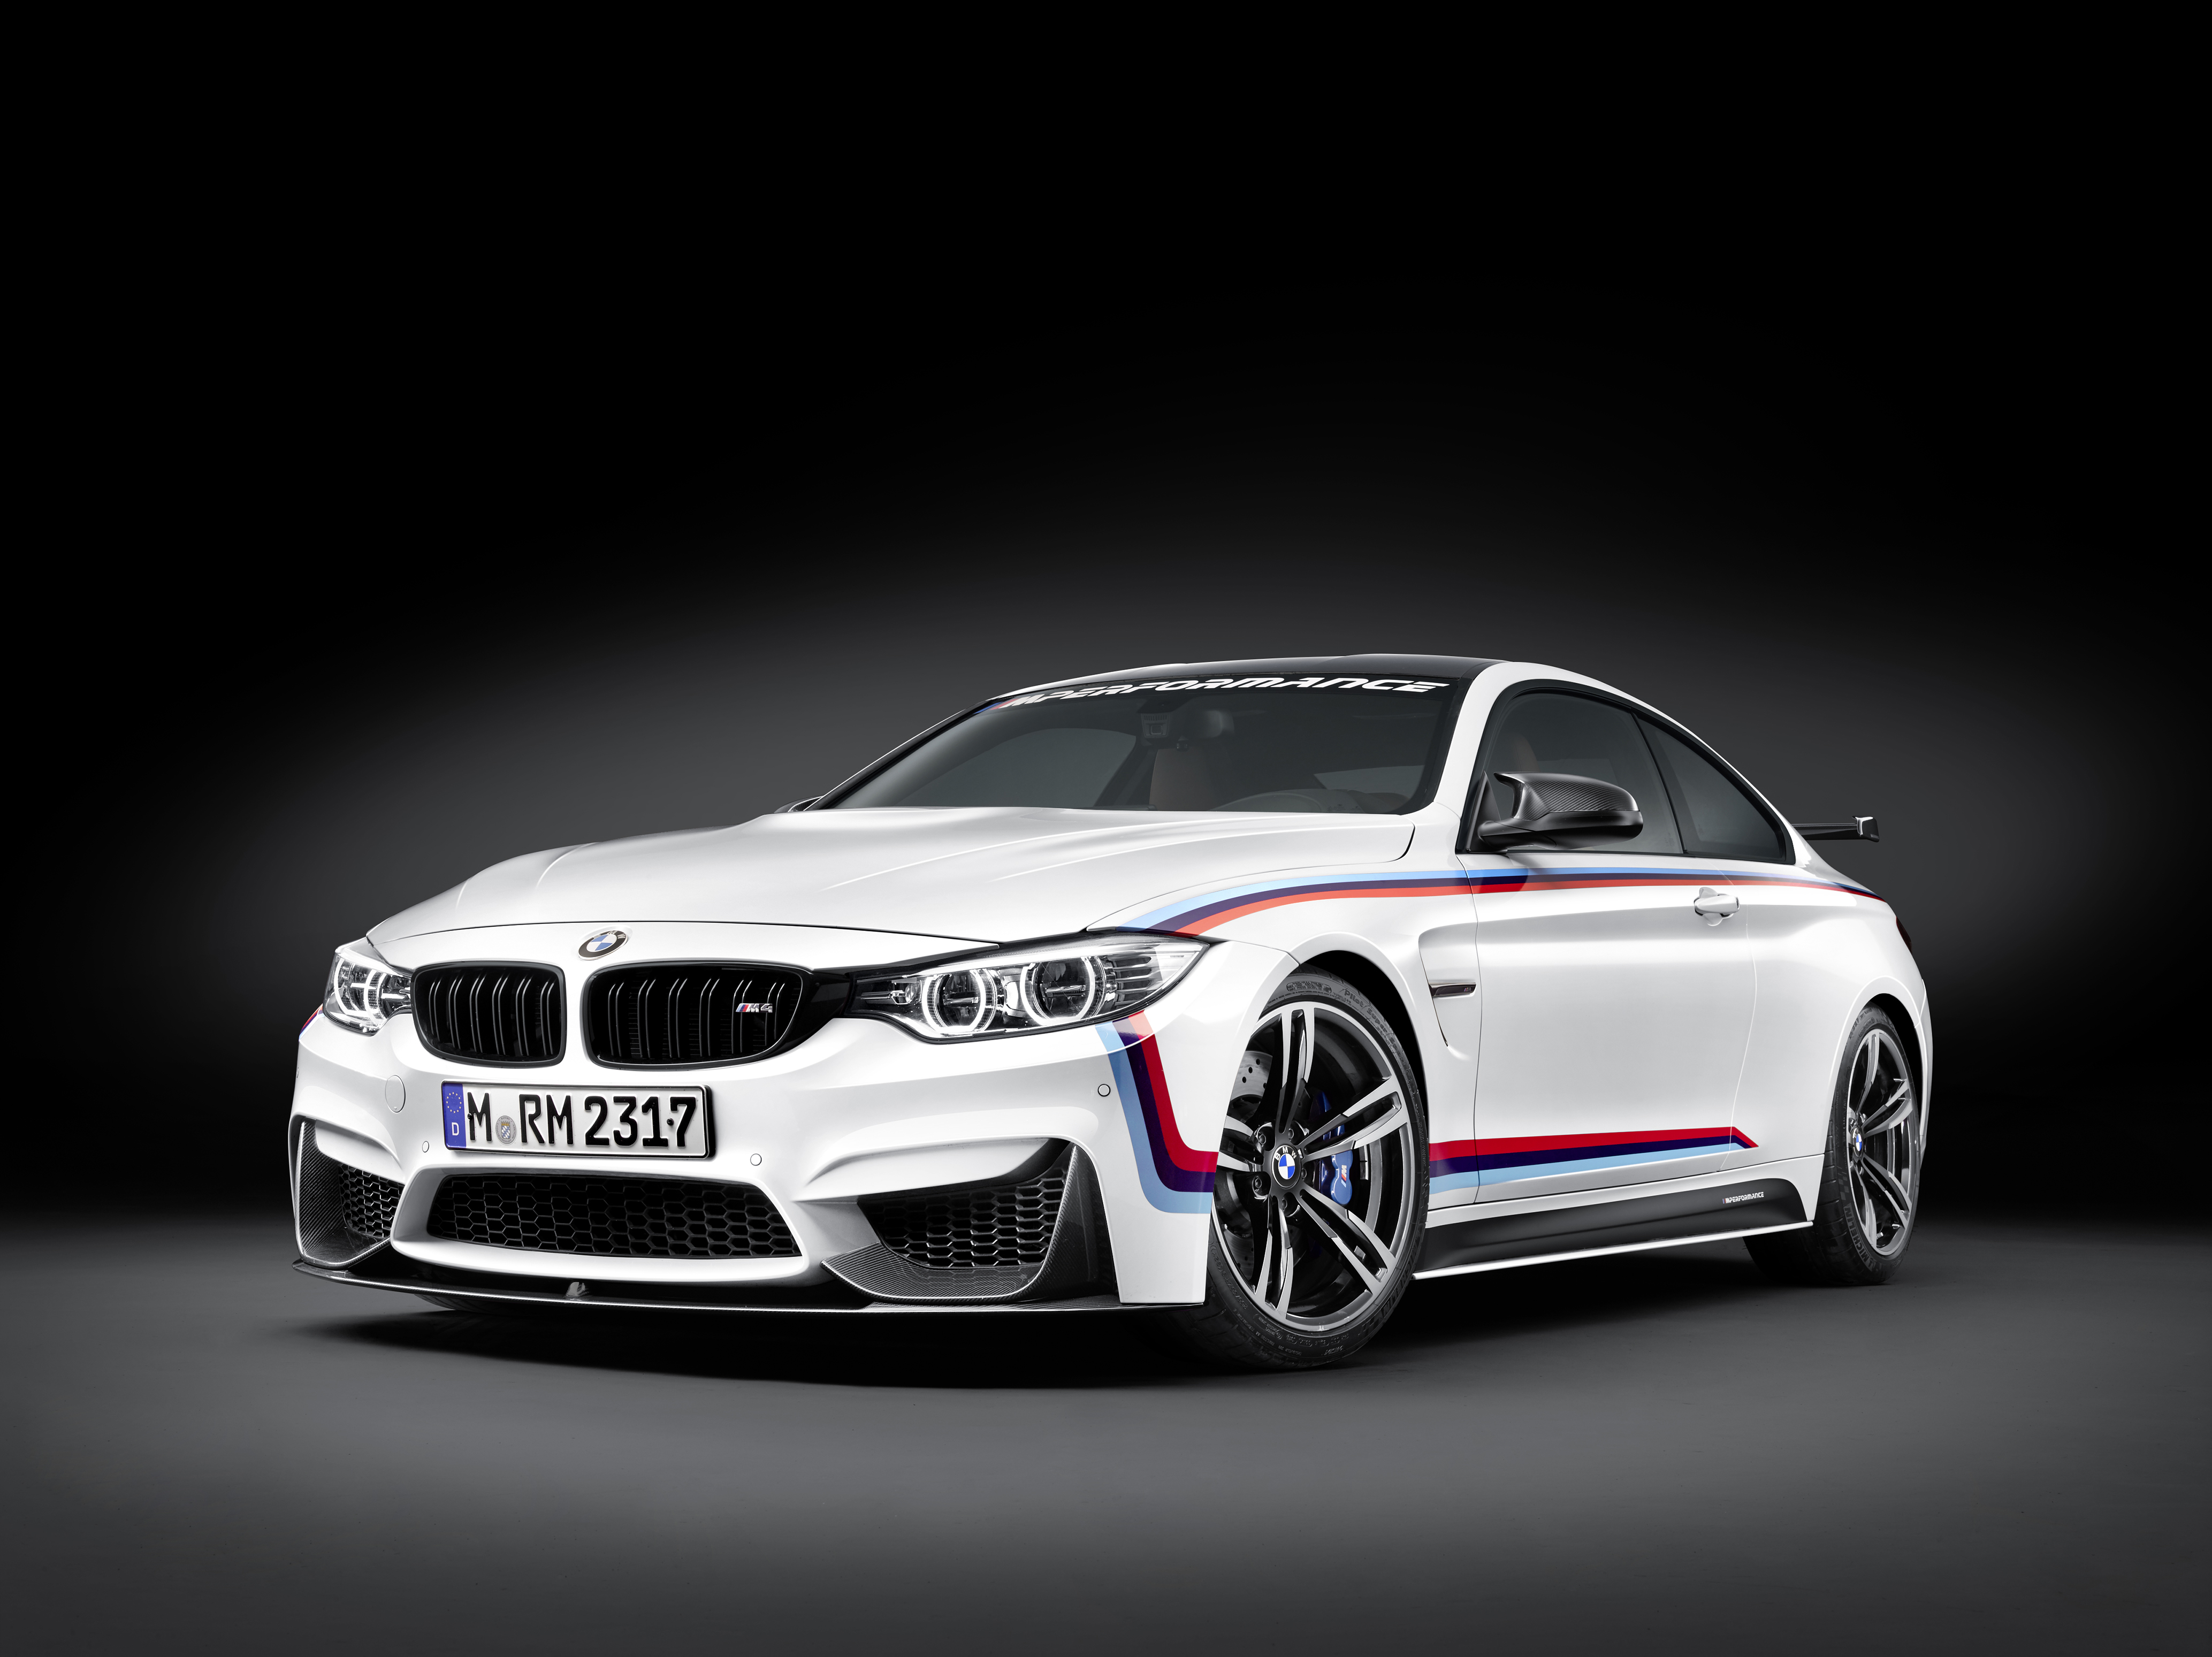 new bmw m4 m performance parts introduced at sema 2015 including cfrp wing autoevolution. Black Bedroom Furniture Sets. Home Design Ideas